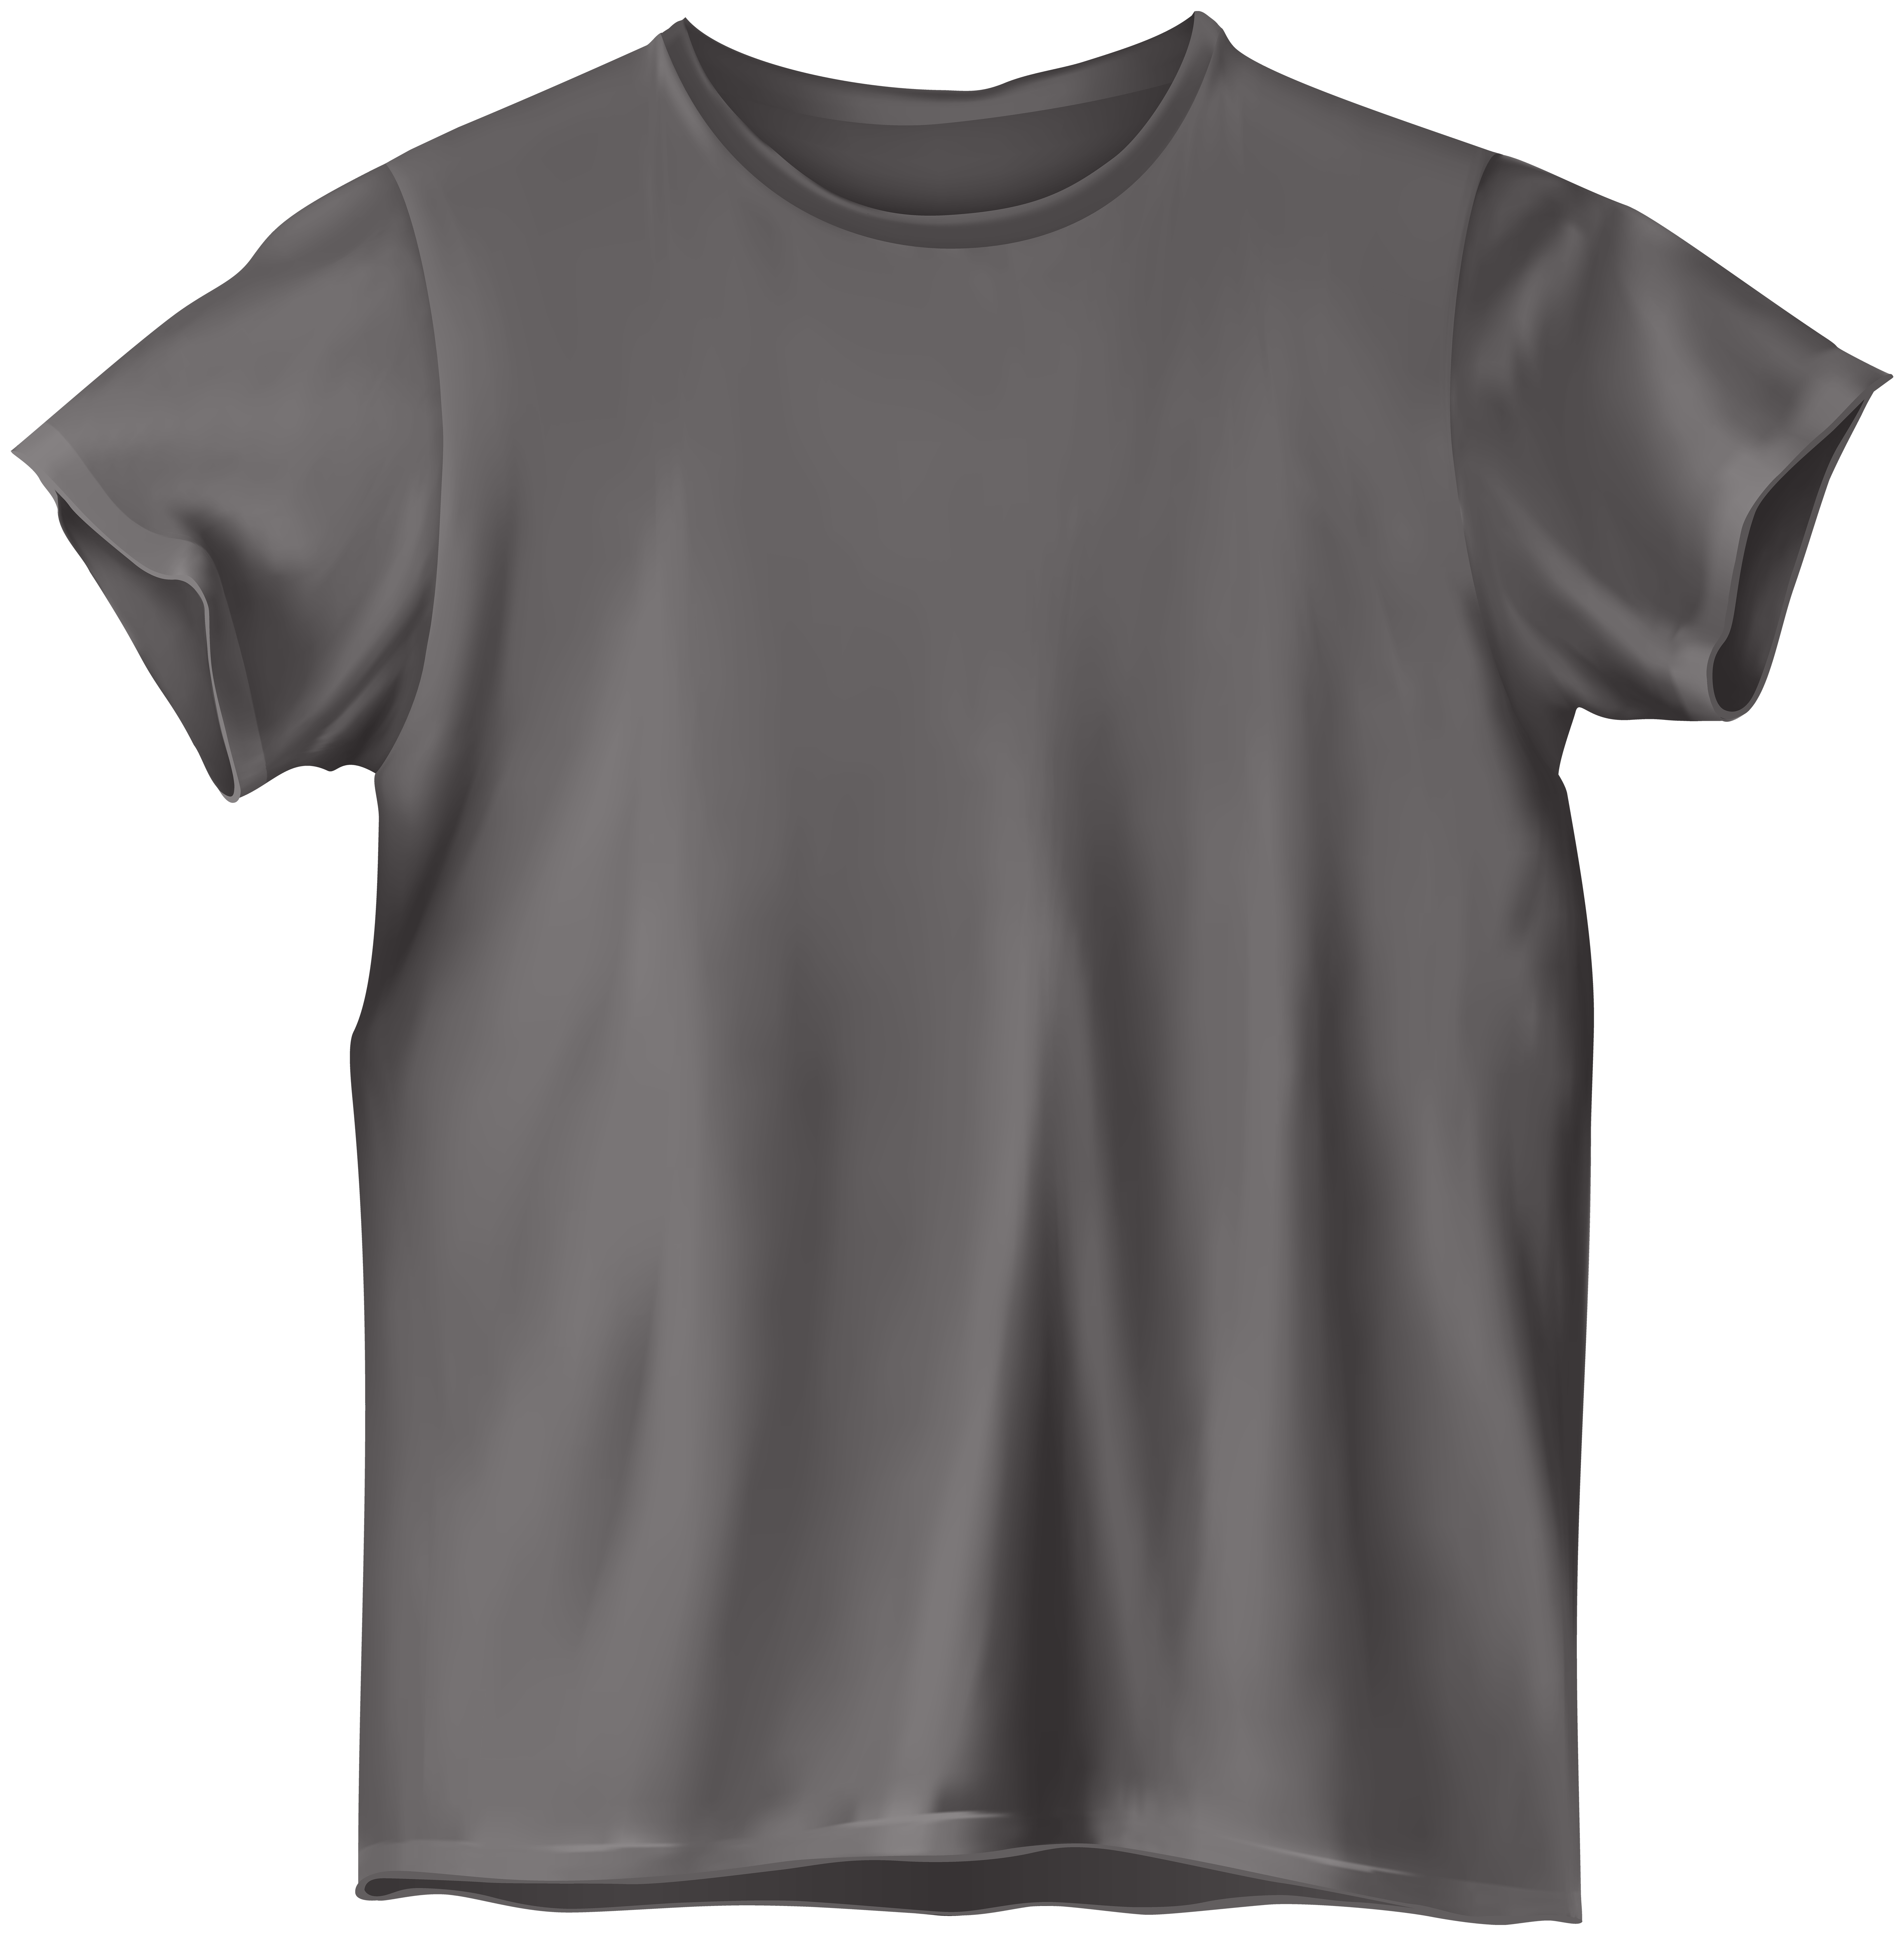 Grey t shirt clip. Tshirt png clip black and white download